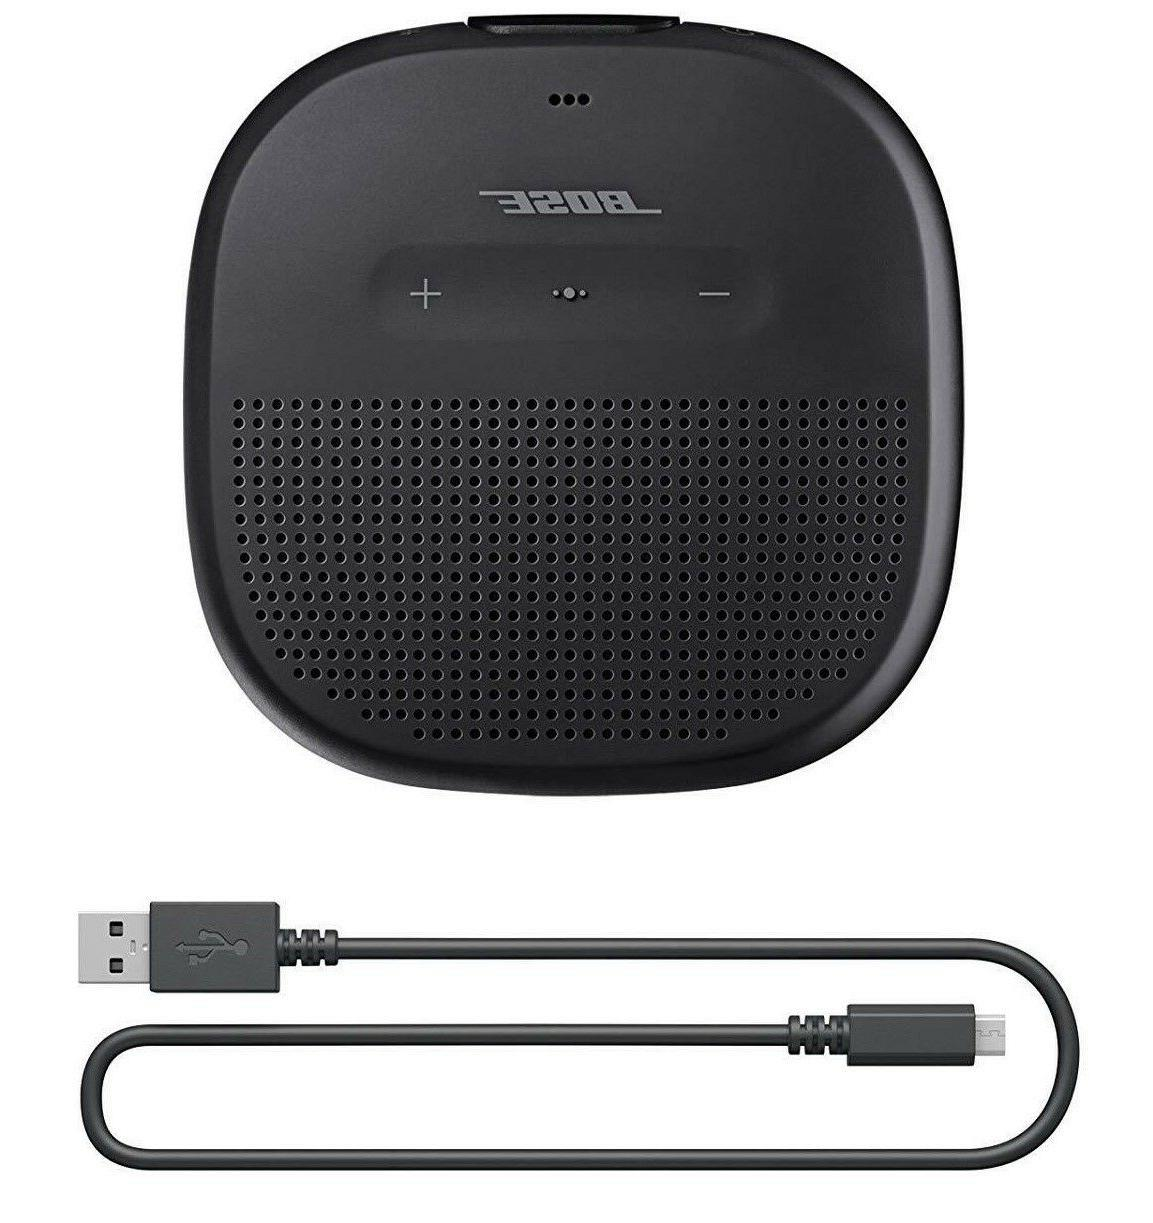 Bose Bluetooth Speaker, Black #783342-0100